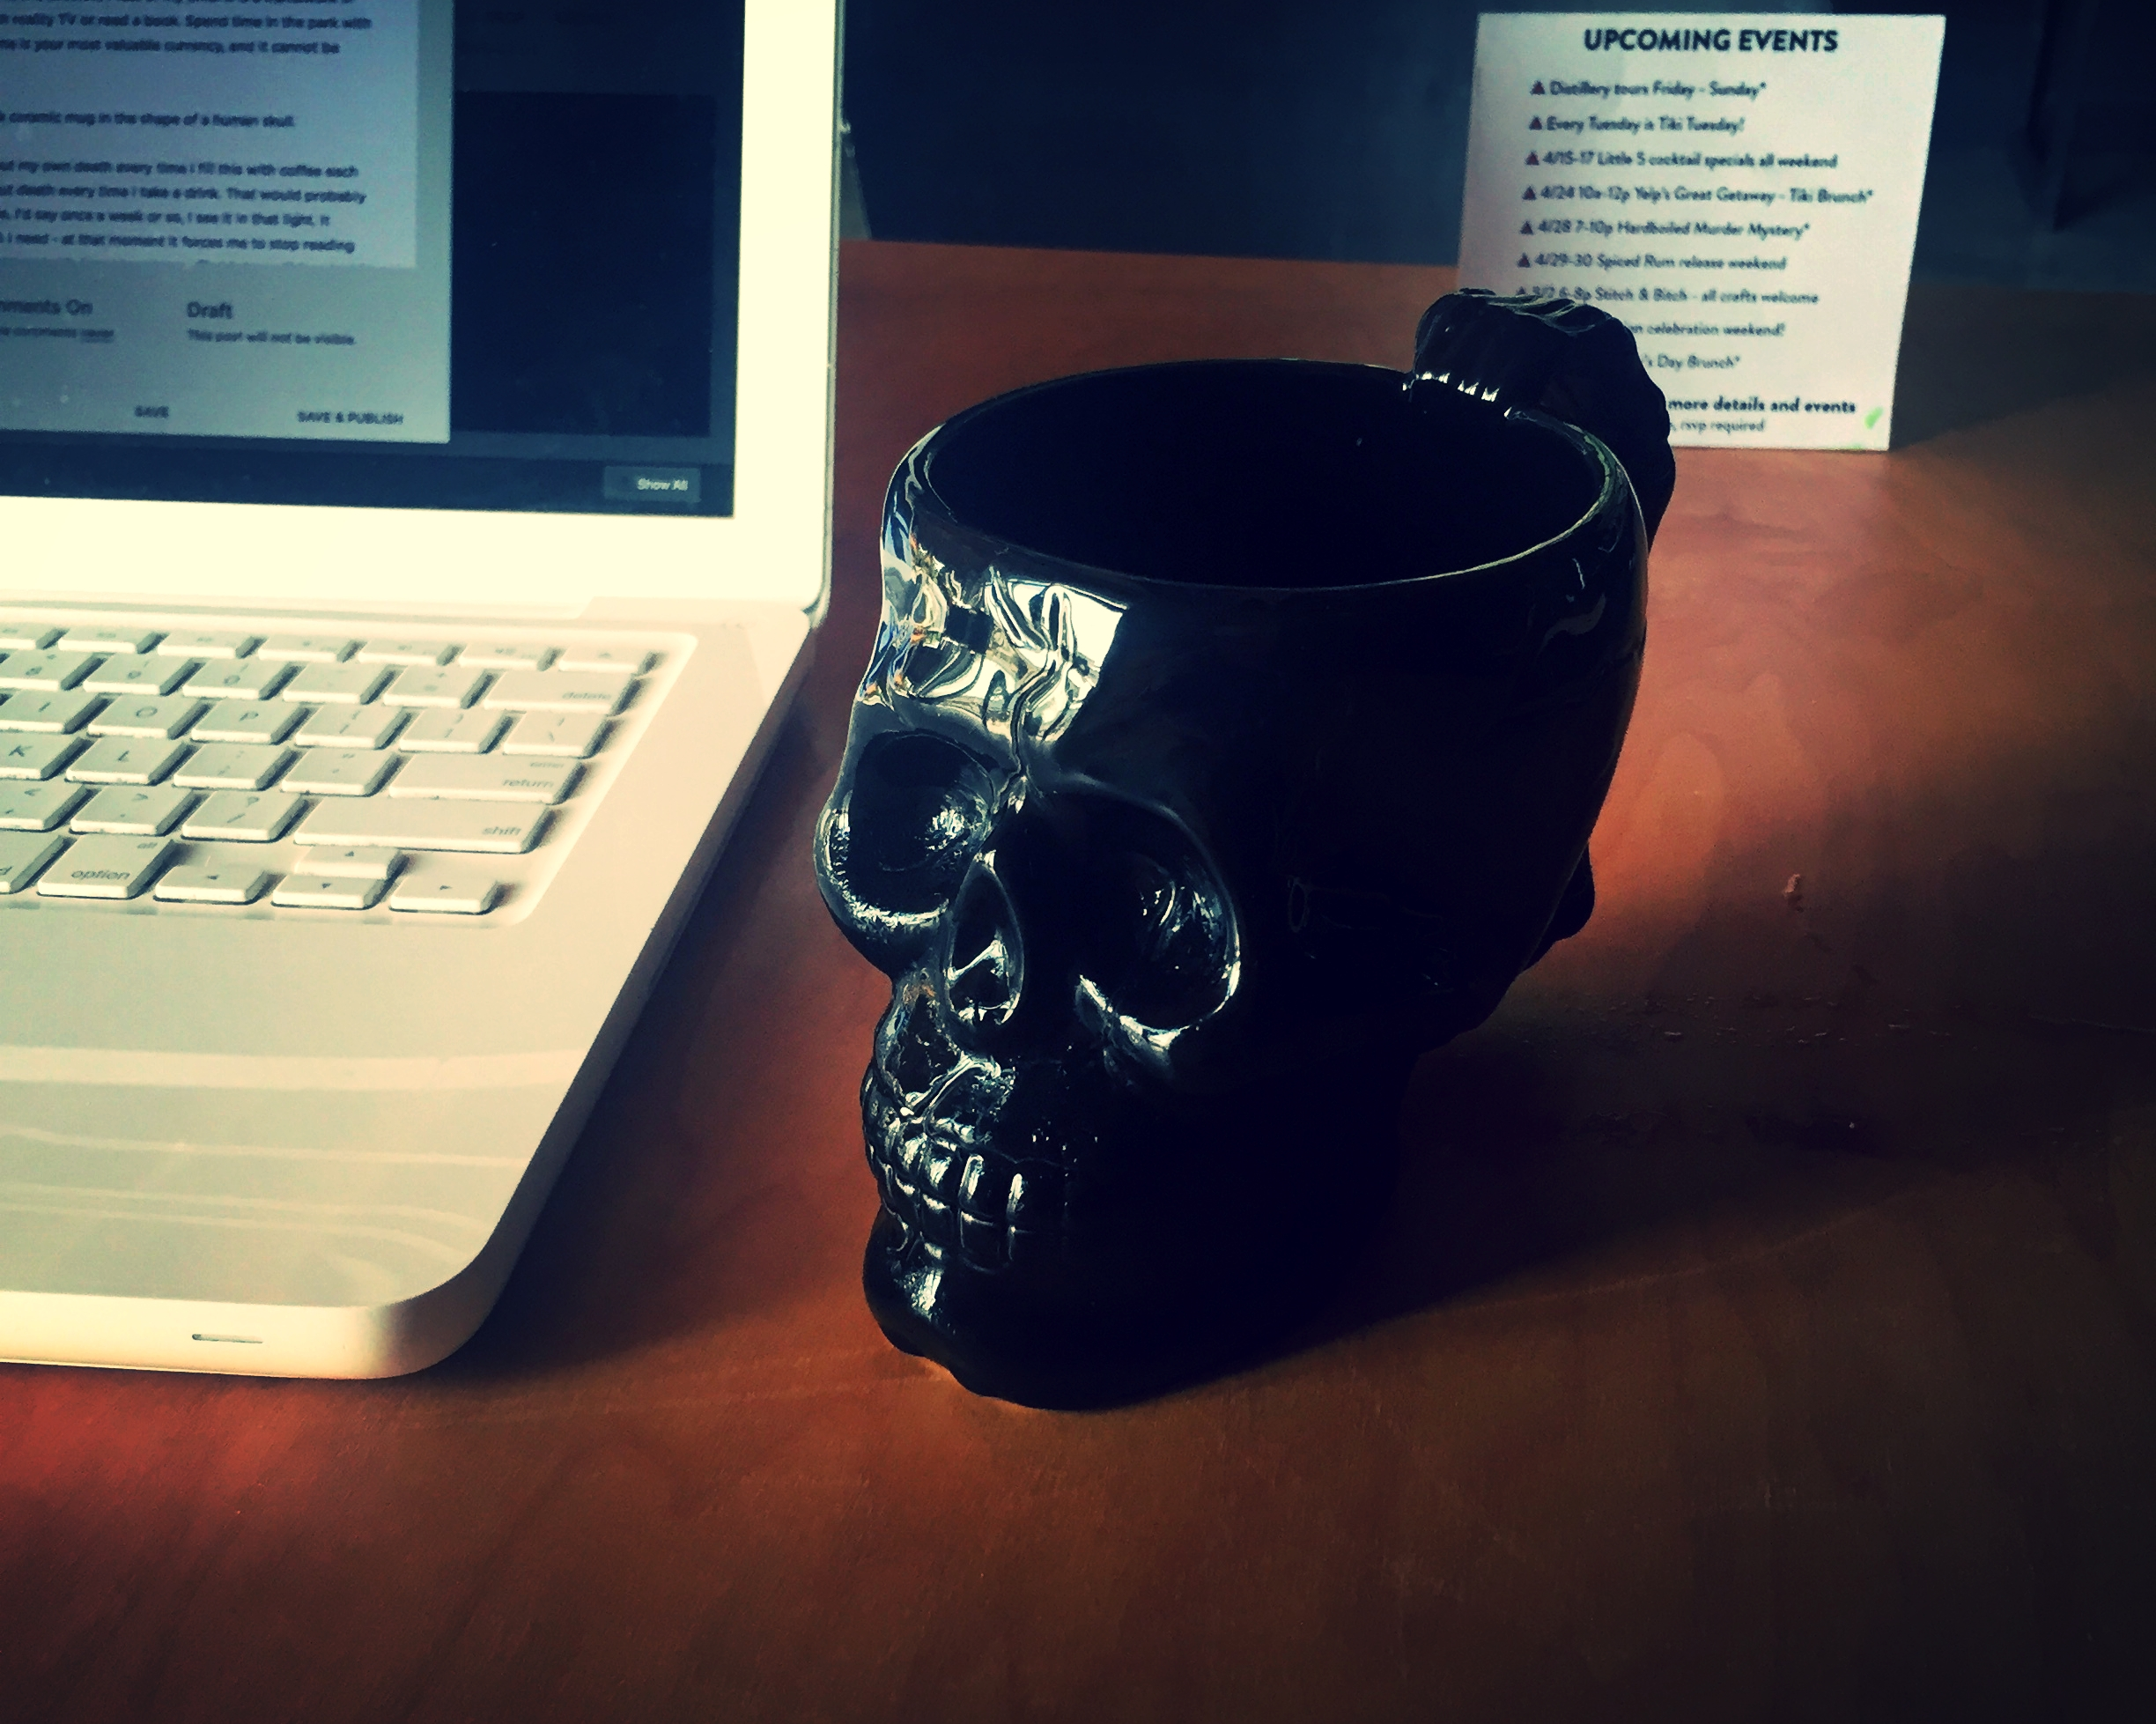 This is my own Memento Mori. It's a black ceramic mug in the shape of a human skull.